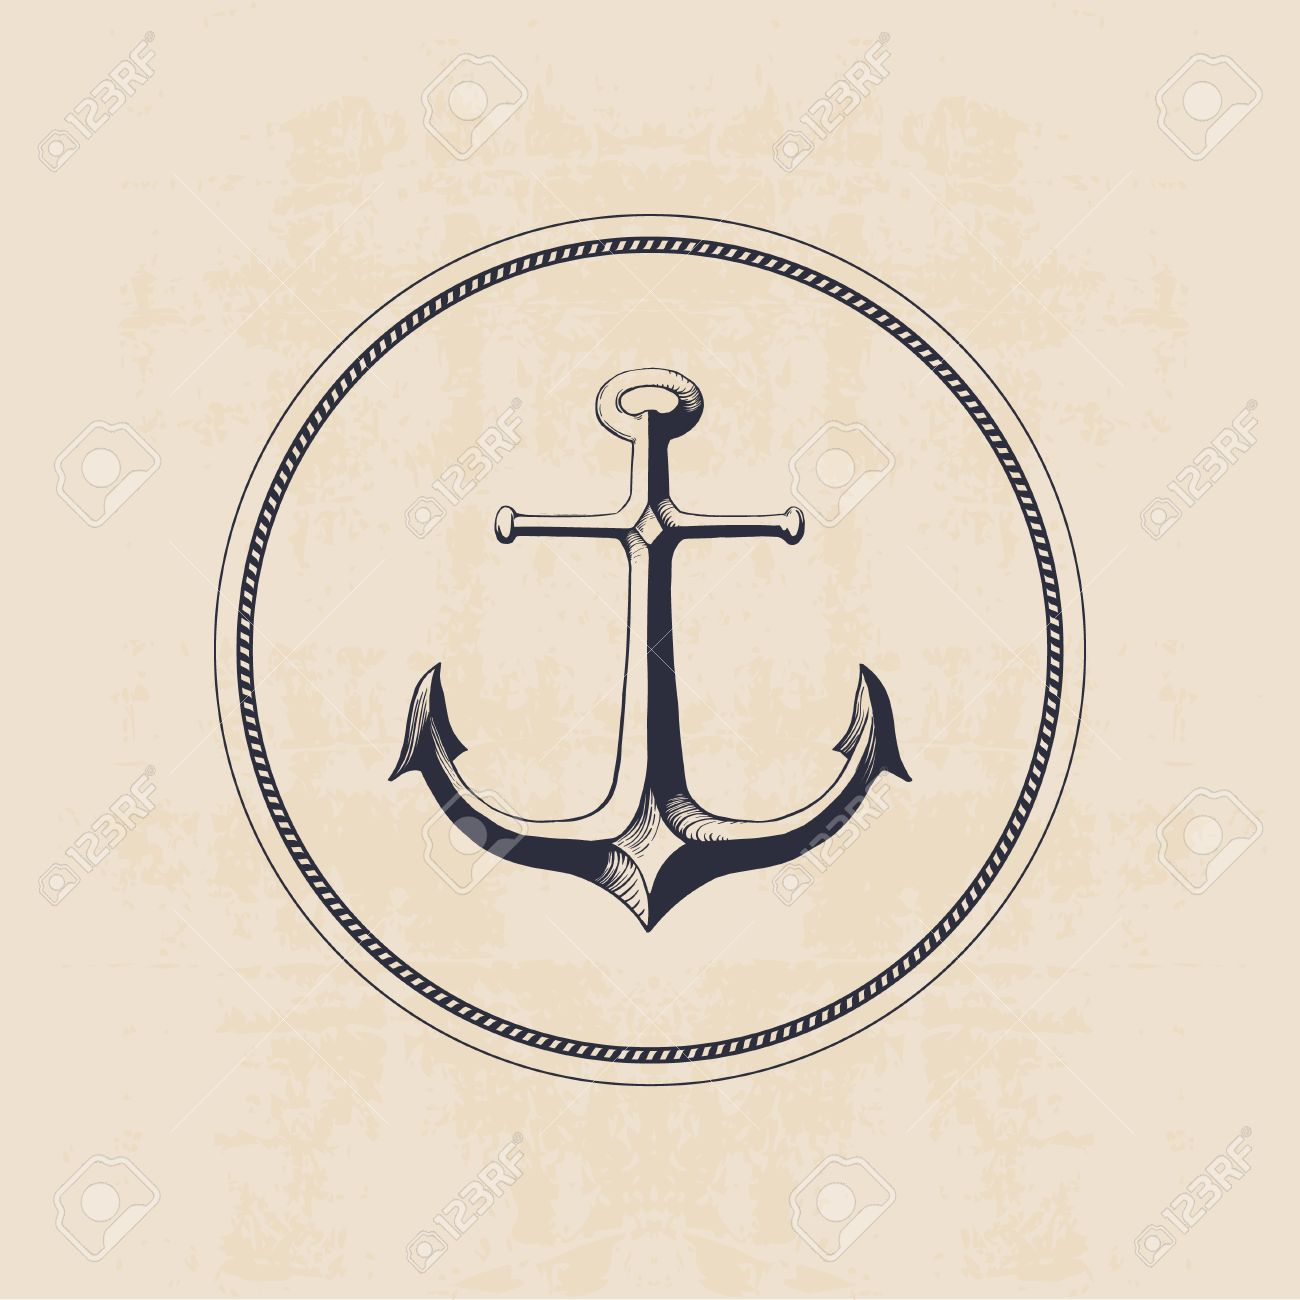 Anchor logo in circle hand drawn illustration royalty free cliparts anchor logo in circle hand drawn illustration stock vector 41245815 thecheapjerseys Choice Image